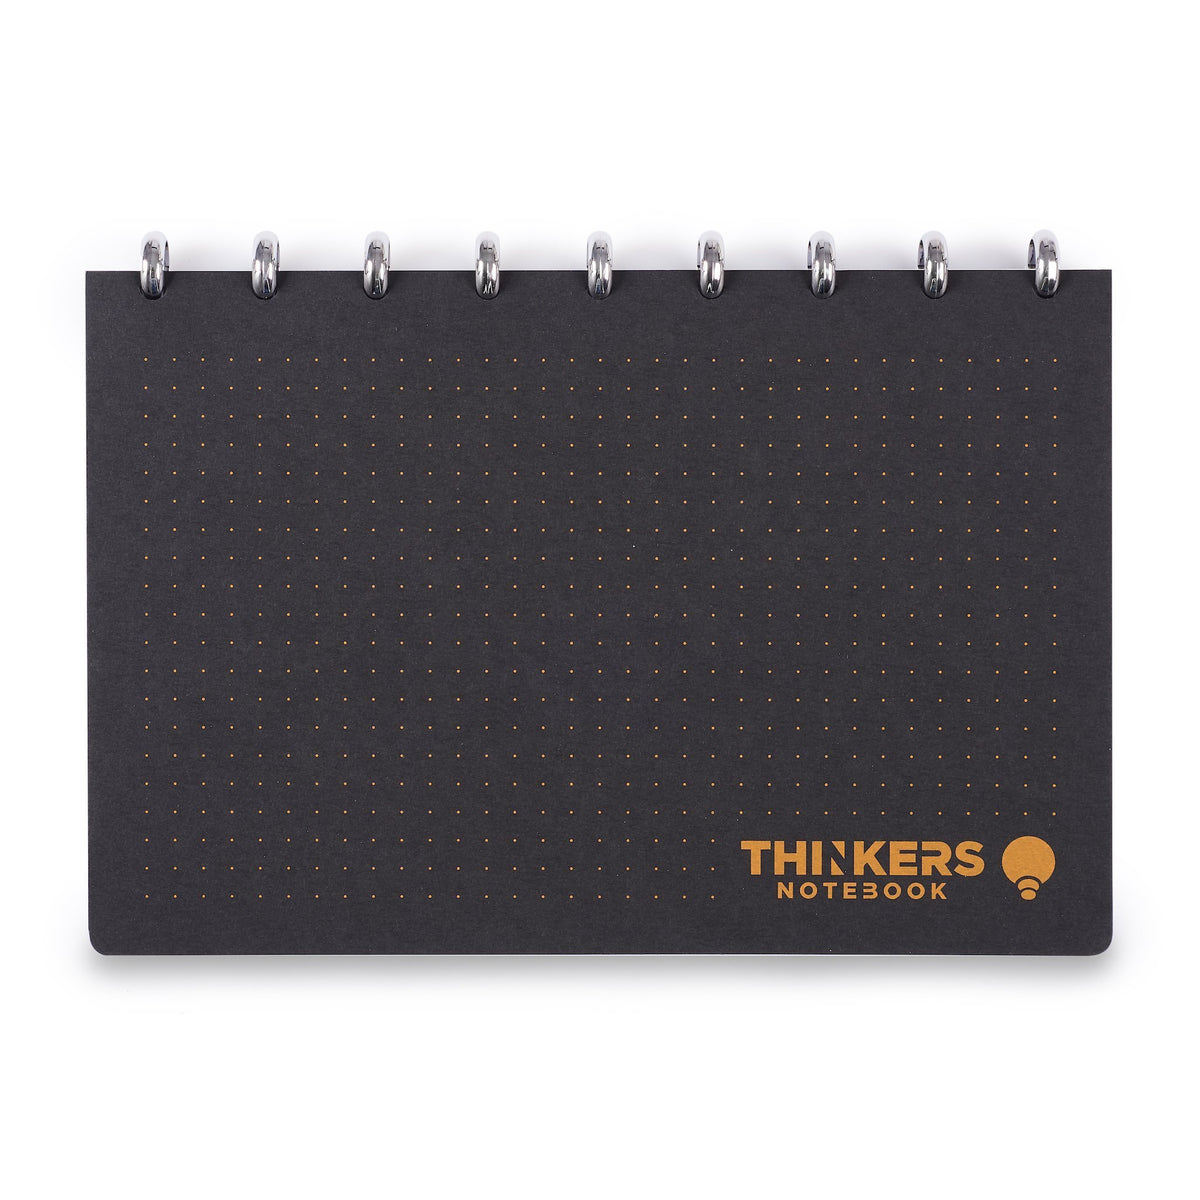 THINKERS Notebook - THINKERS Notebook